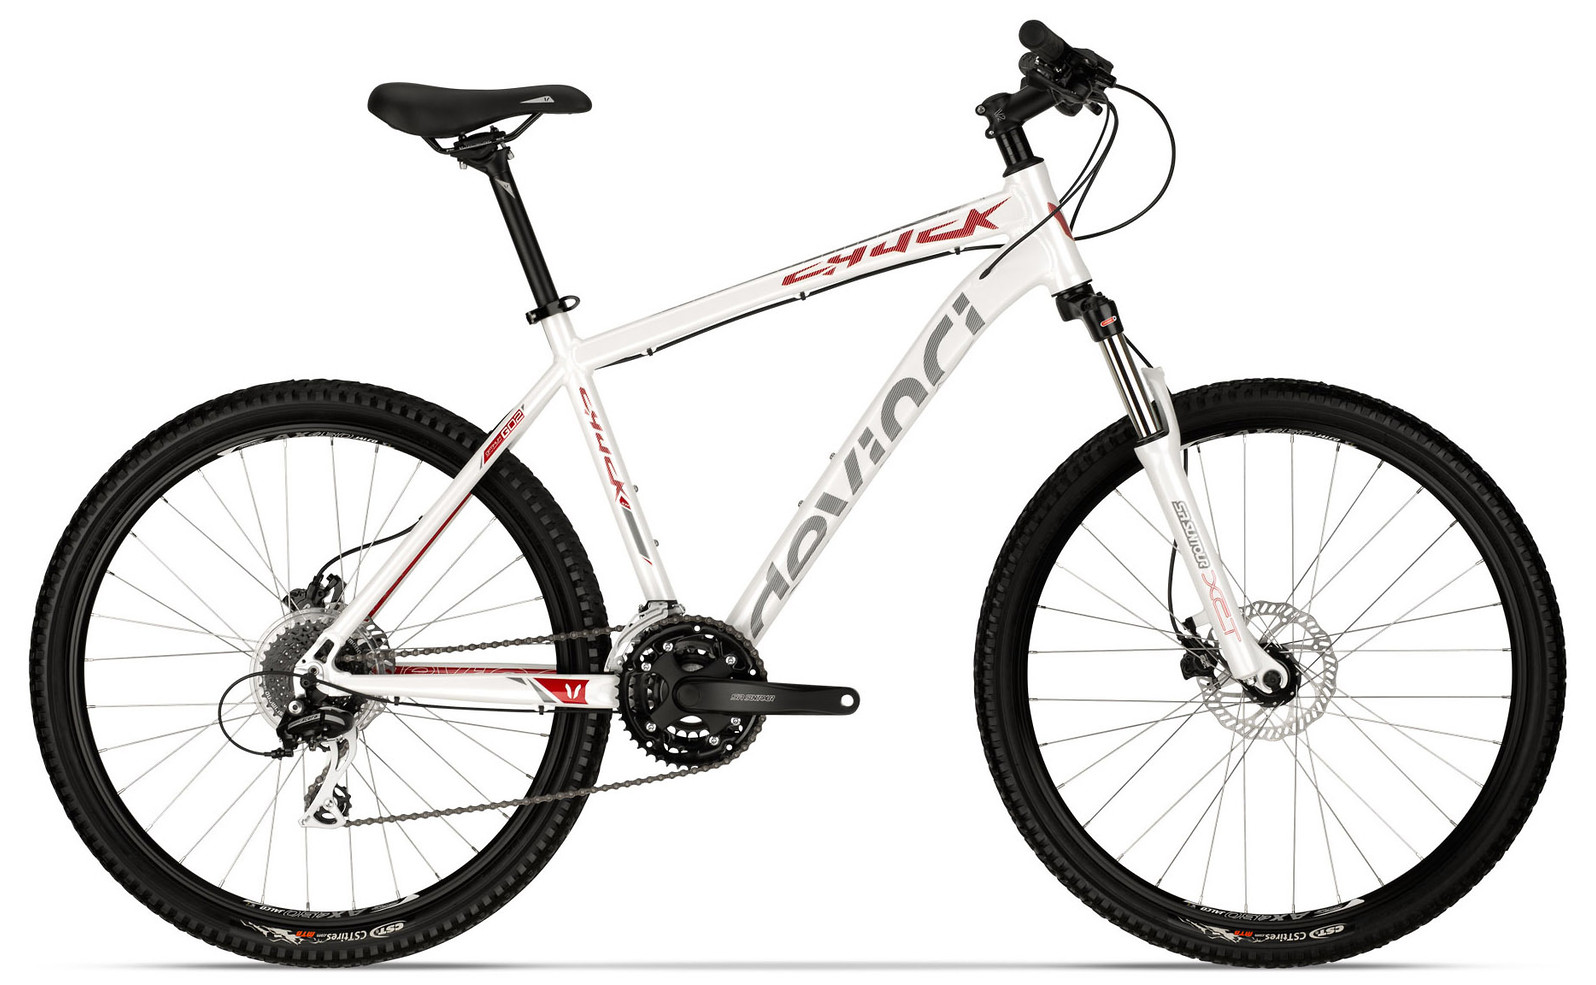 Bike - 2014 Devinci Chuck XP WF